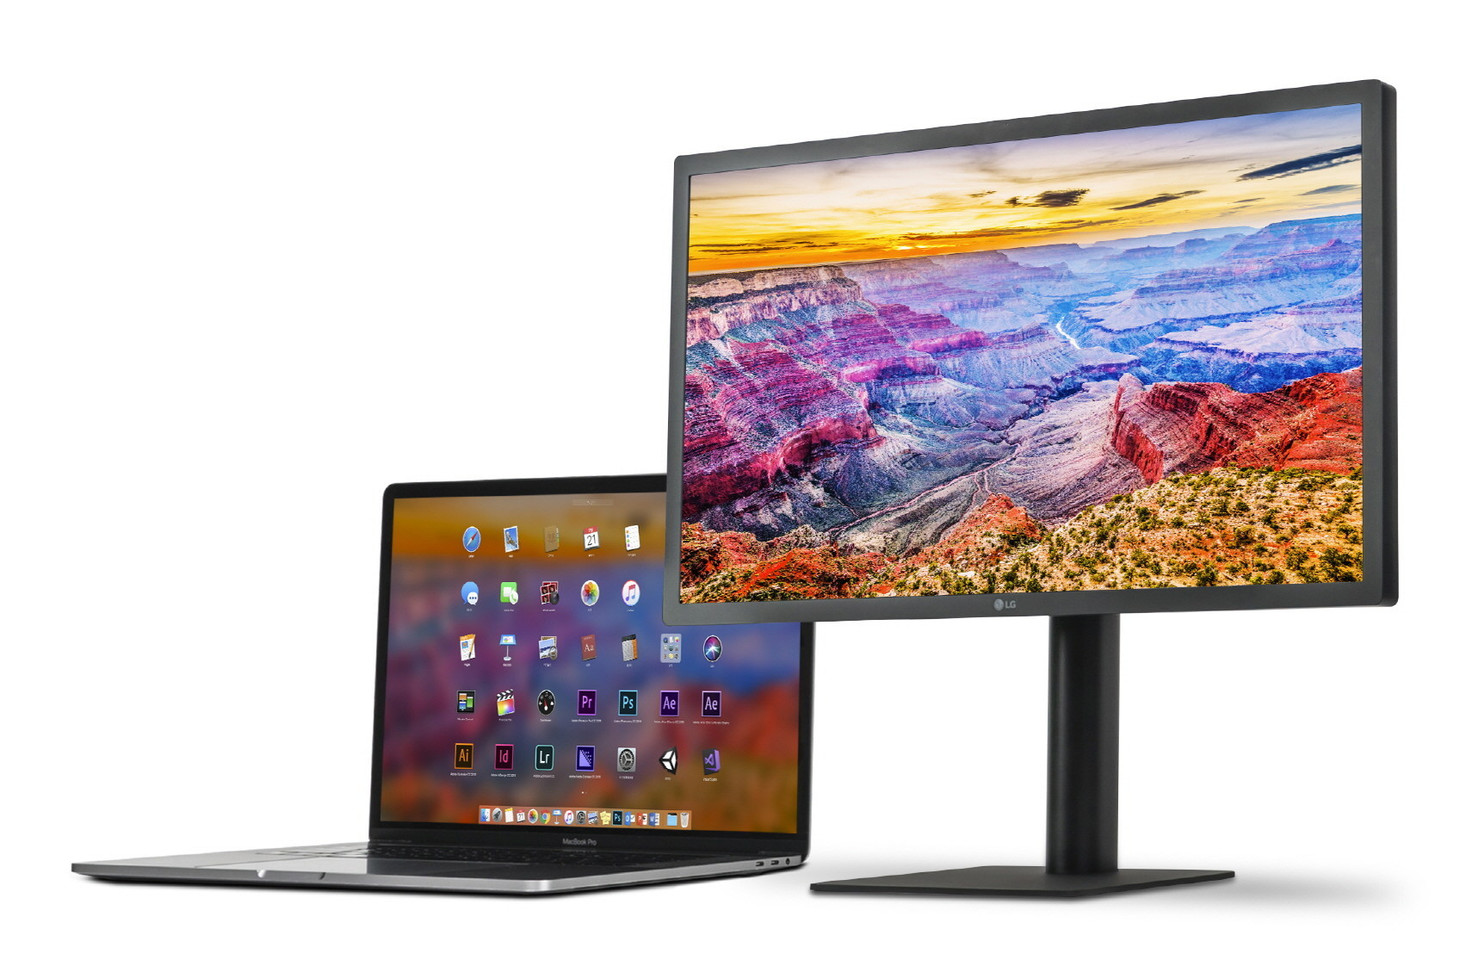 LG Introduces New Ultrafine 5K Display | TechPowerUp Forums